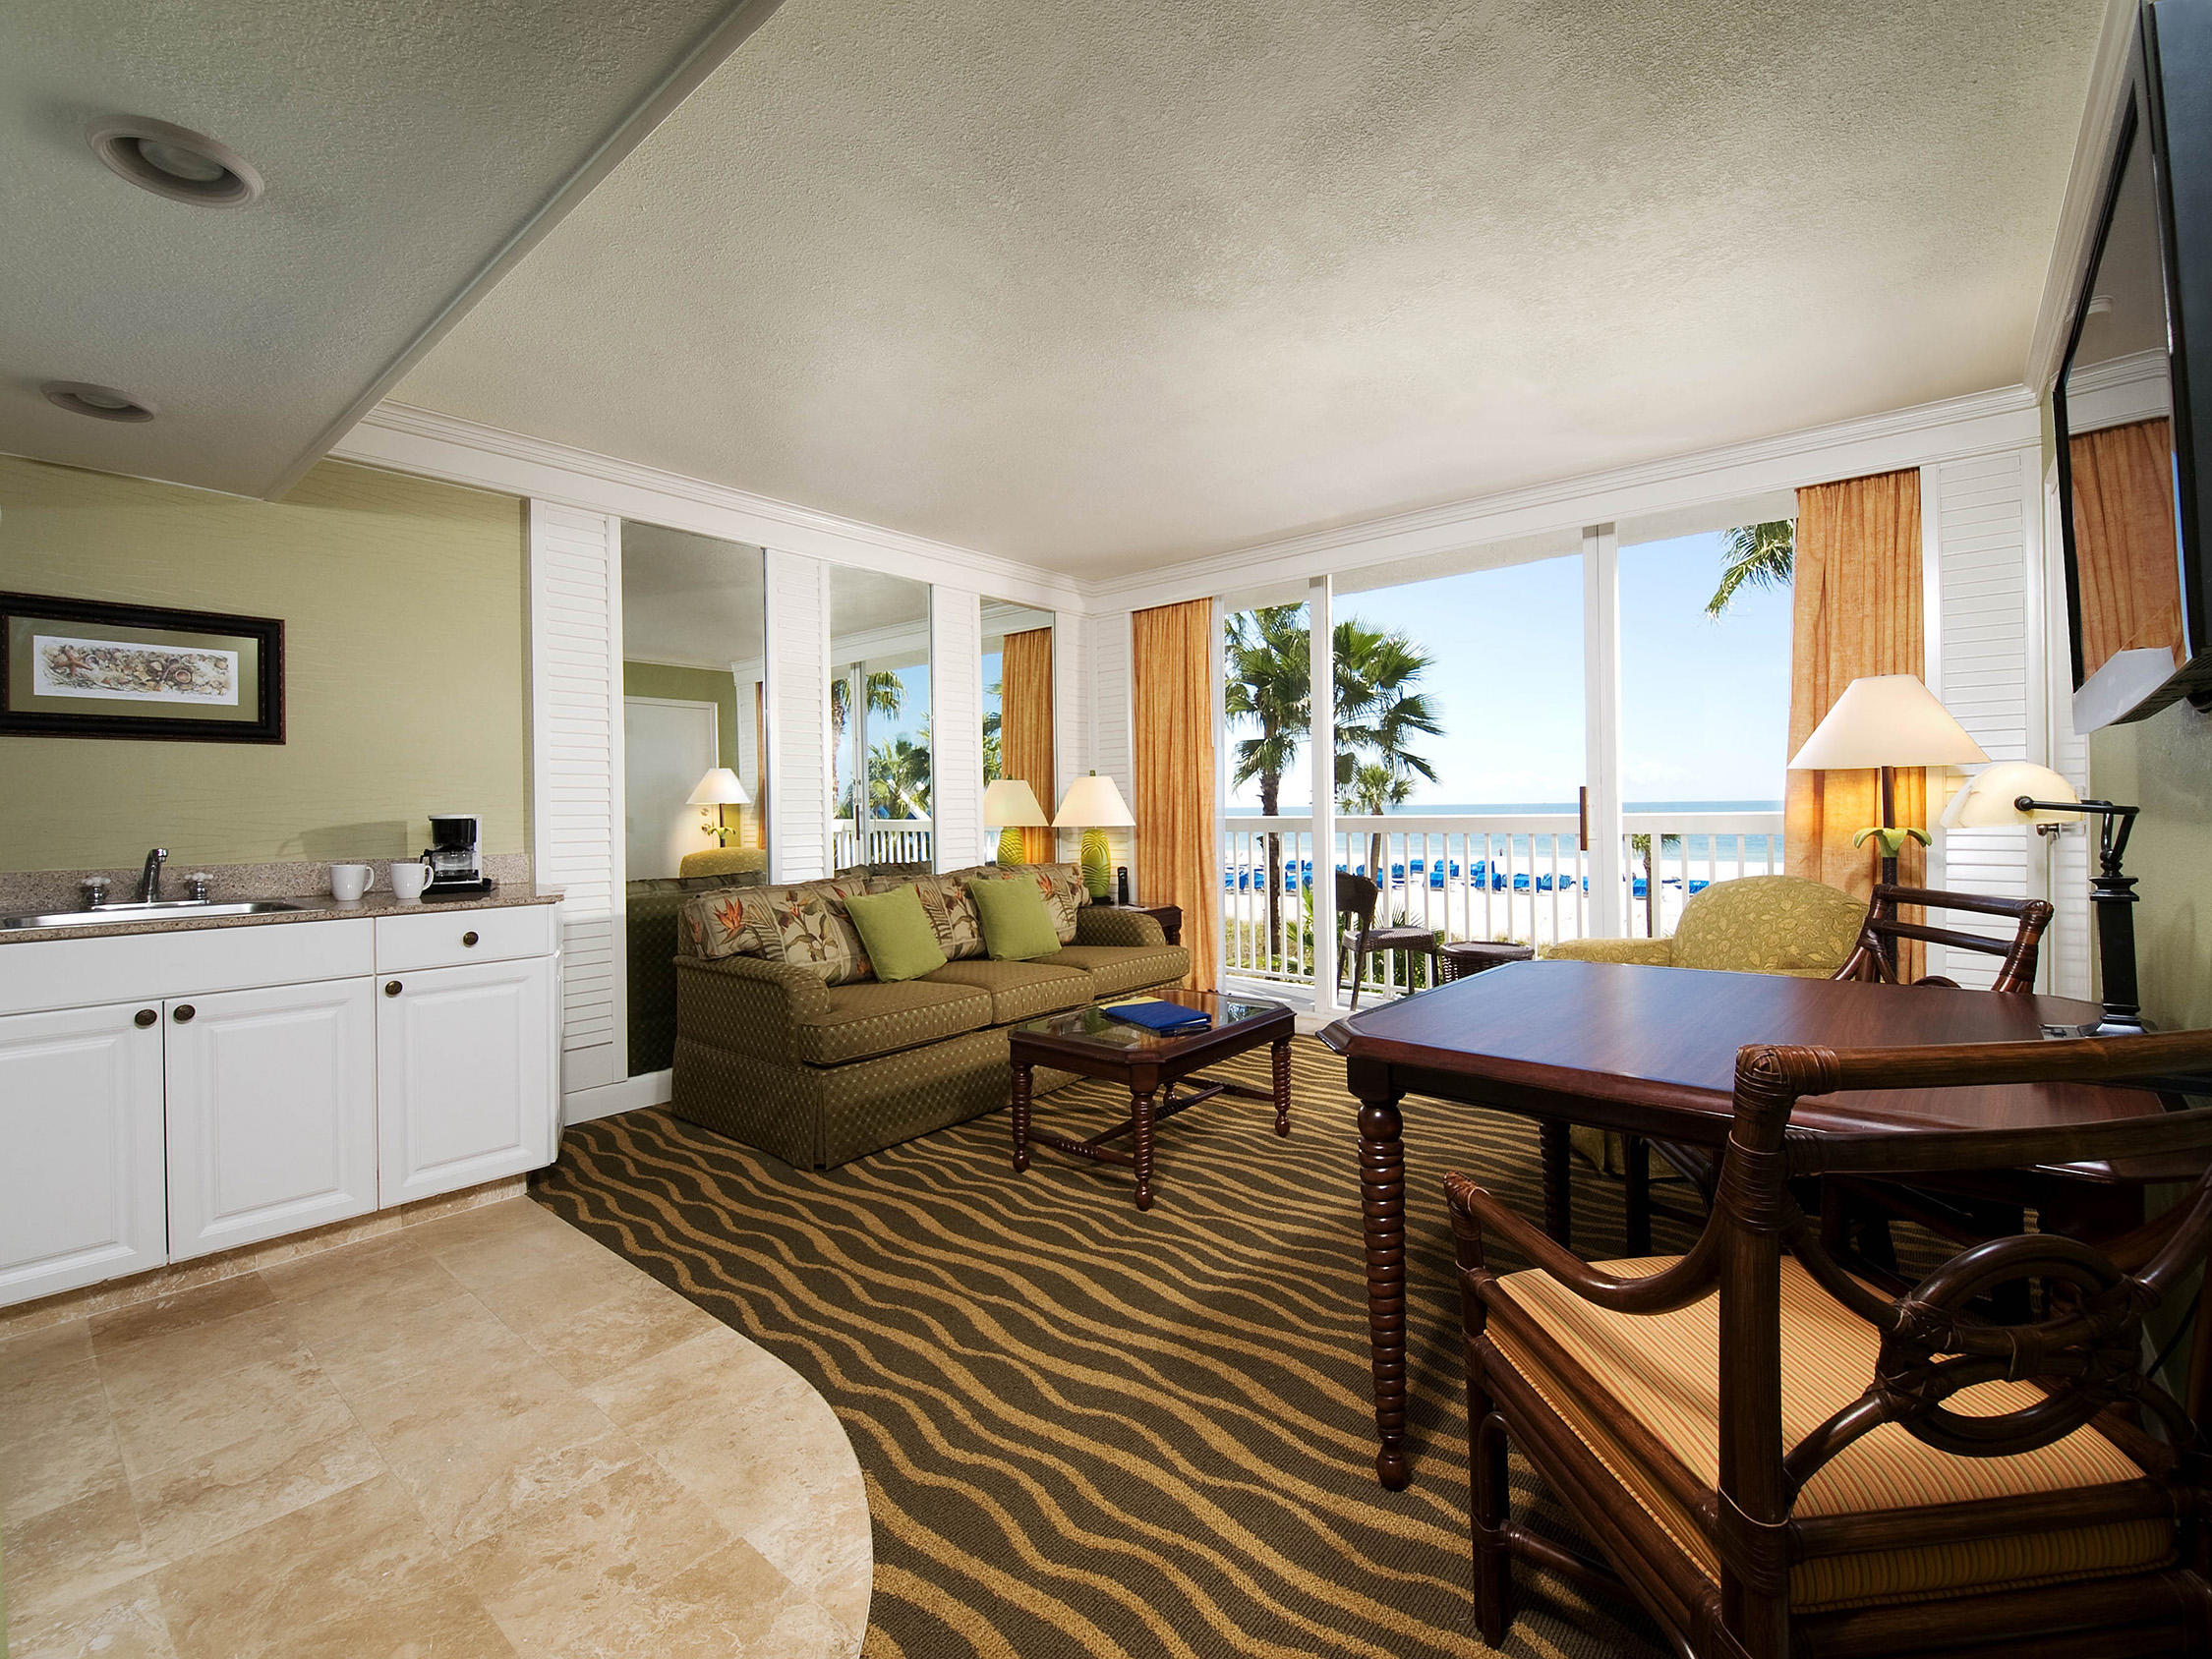 From in-room whirlpool to spacious suites, TradeWinds Island Grand features a wide variety of St Pete Beach accommodations and pet-friendly rooms.